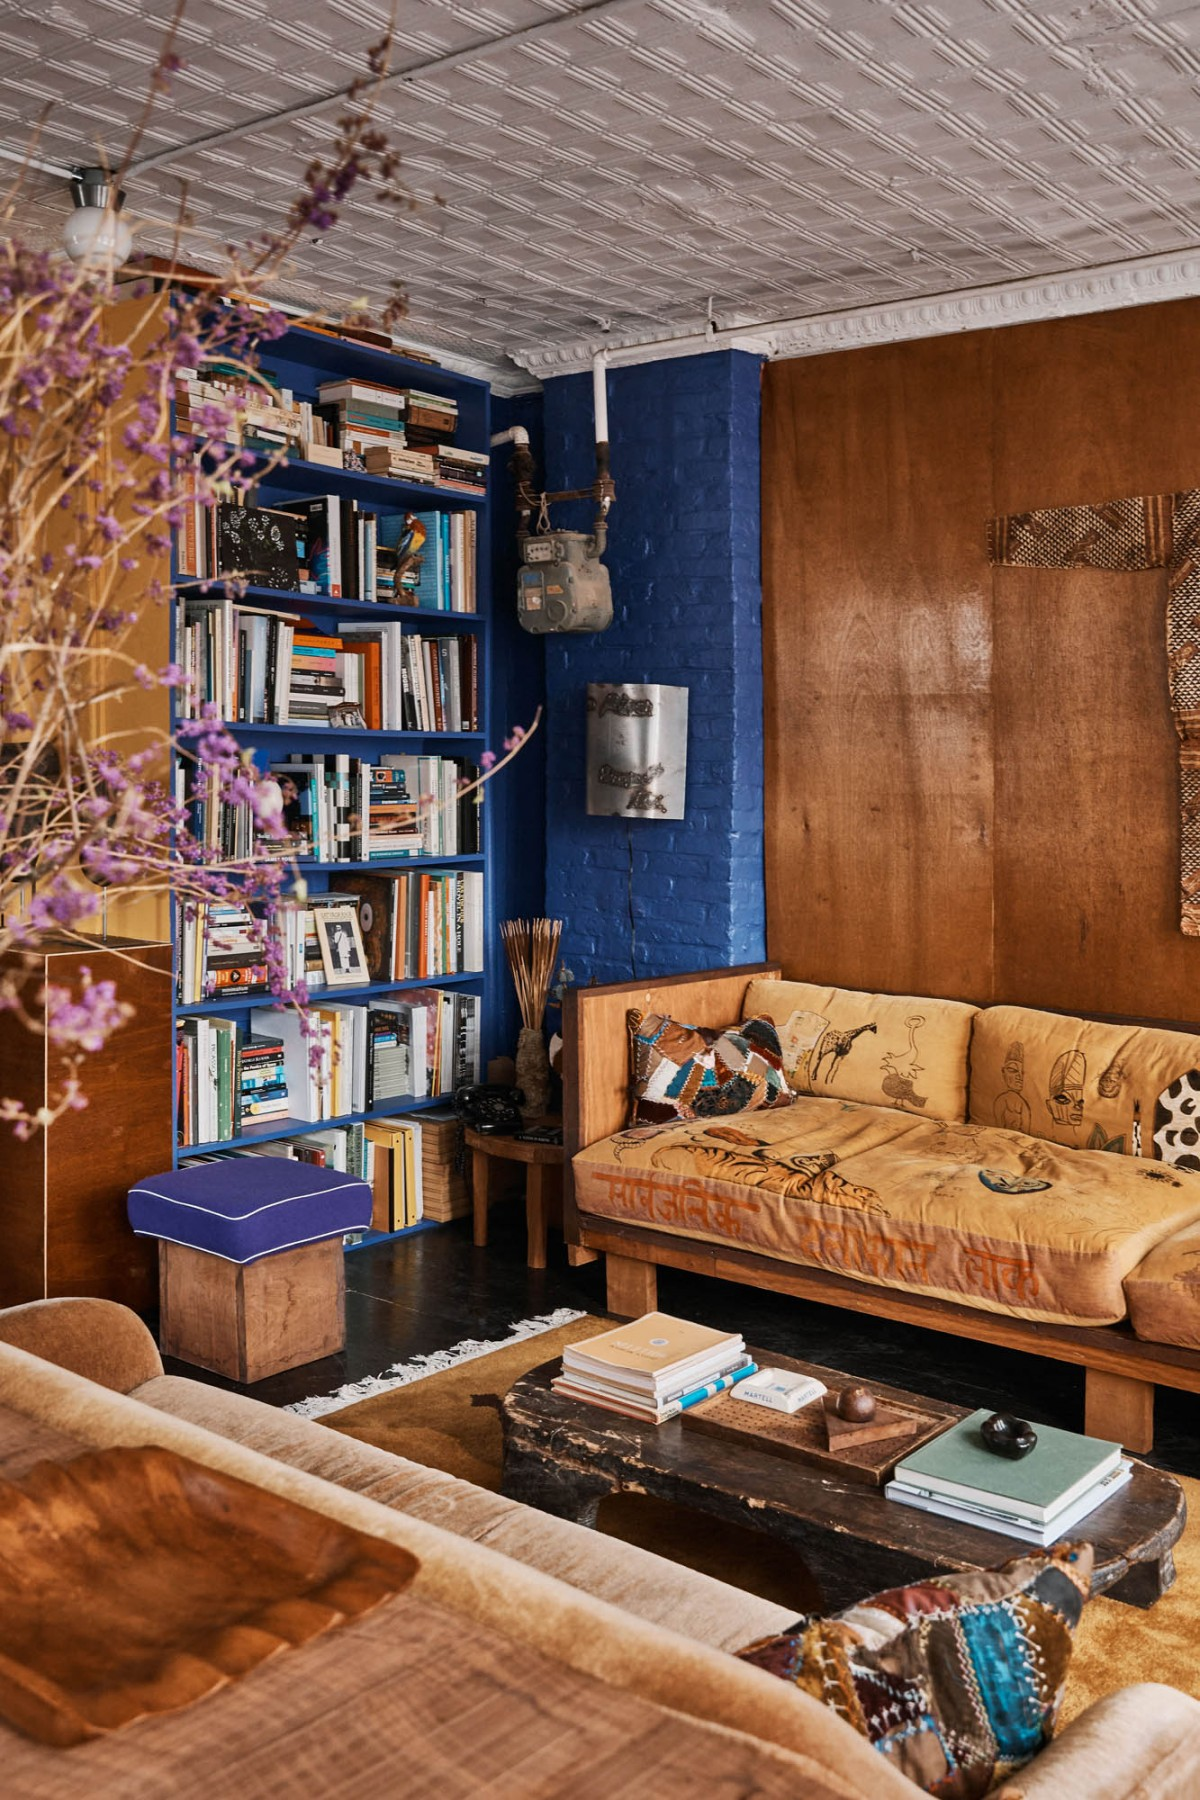 Eclectic, tactile and warm -Downtown Manhattan - Green River Project